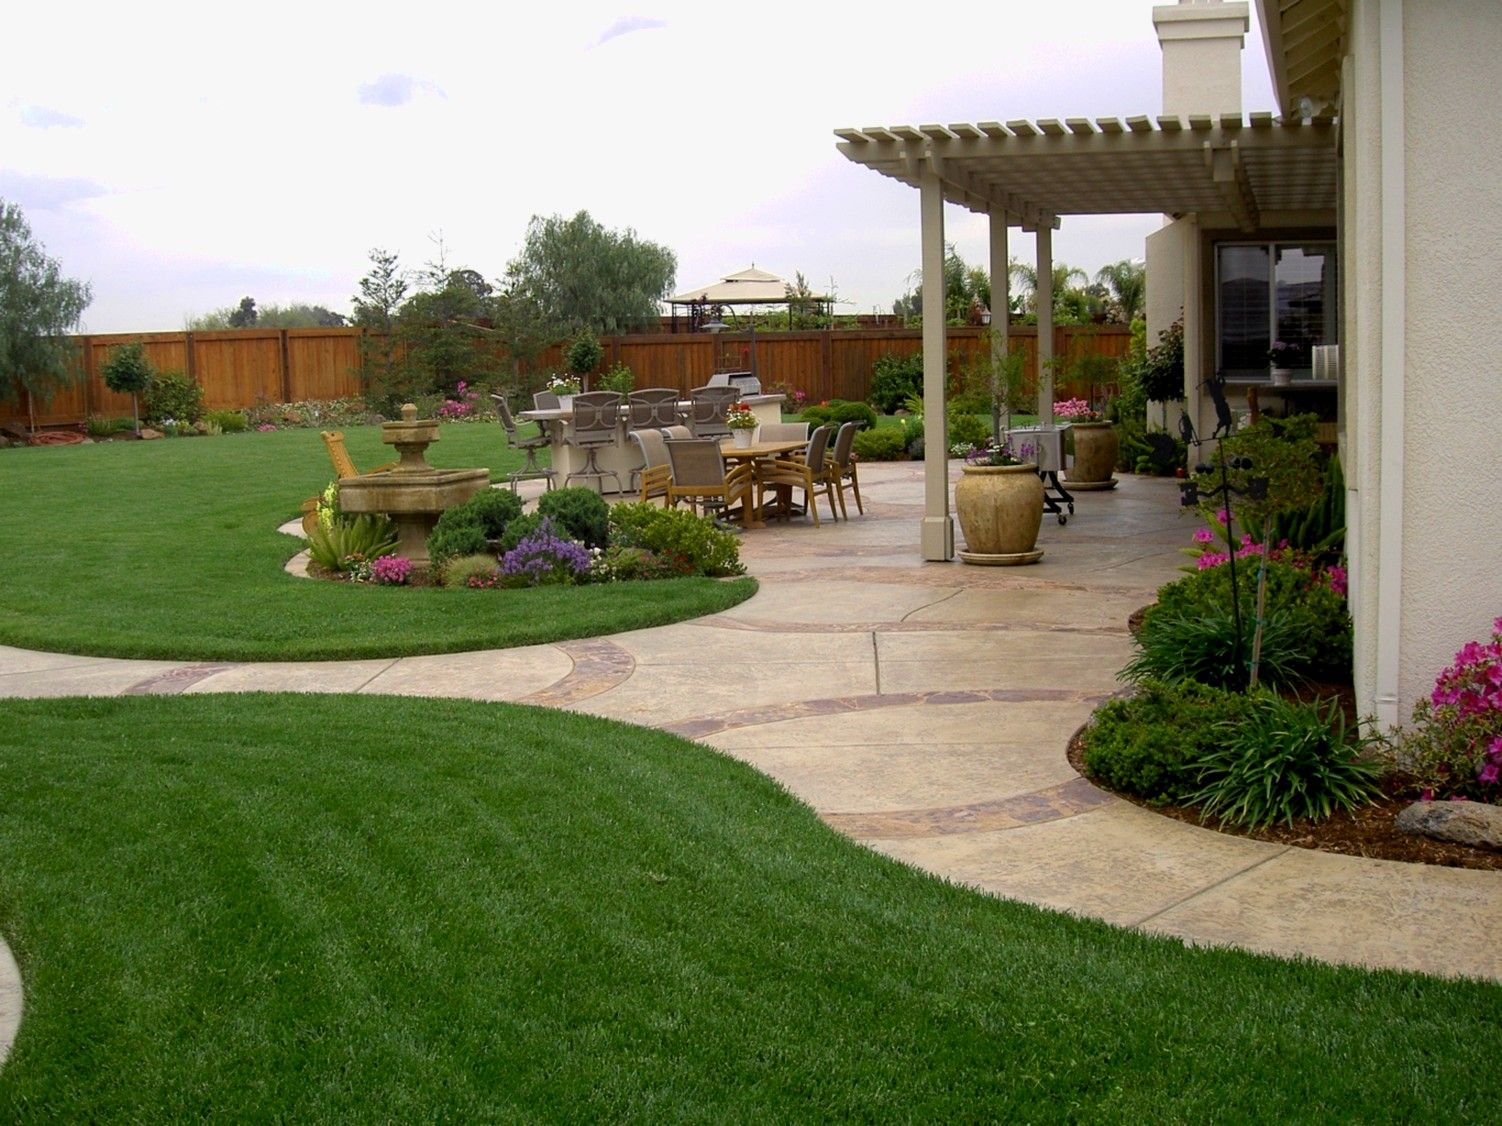 Backyard Landscape Designs With Modern Landscaping With Backyard in Backyard Landscape Design Photos